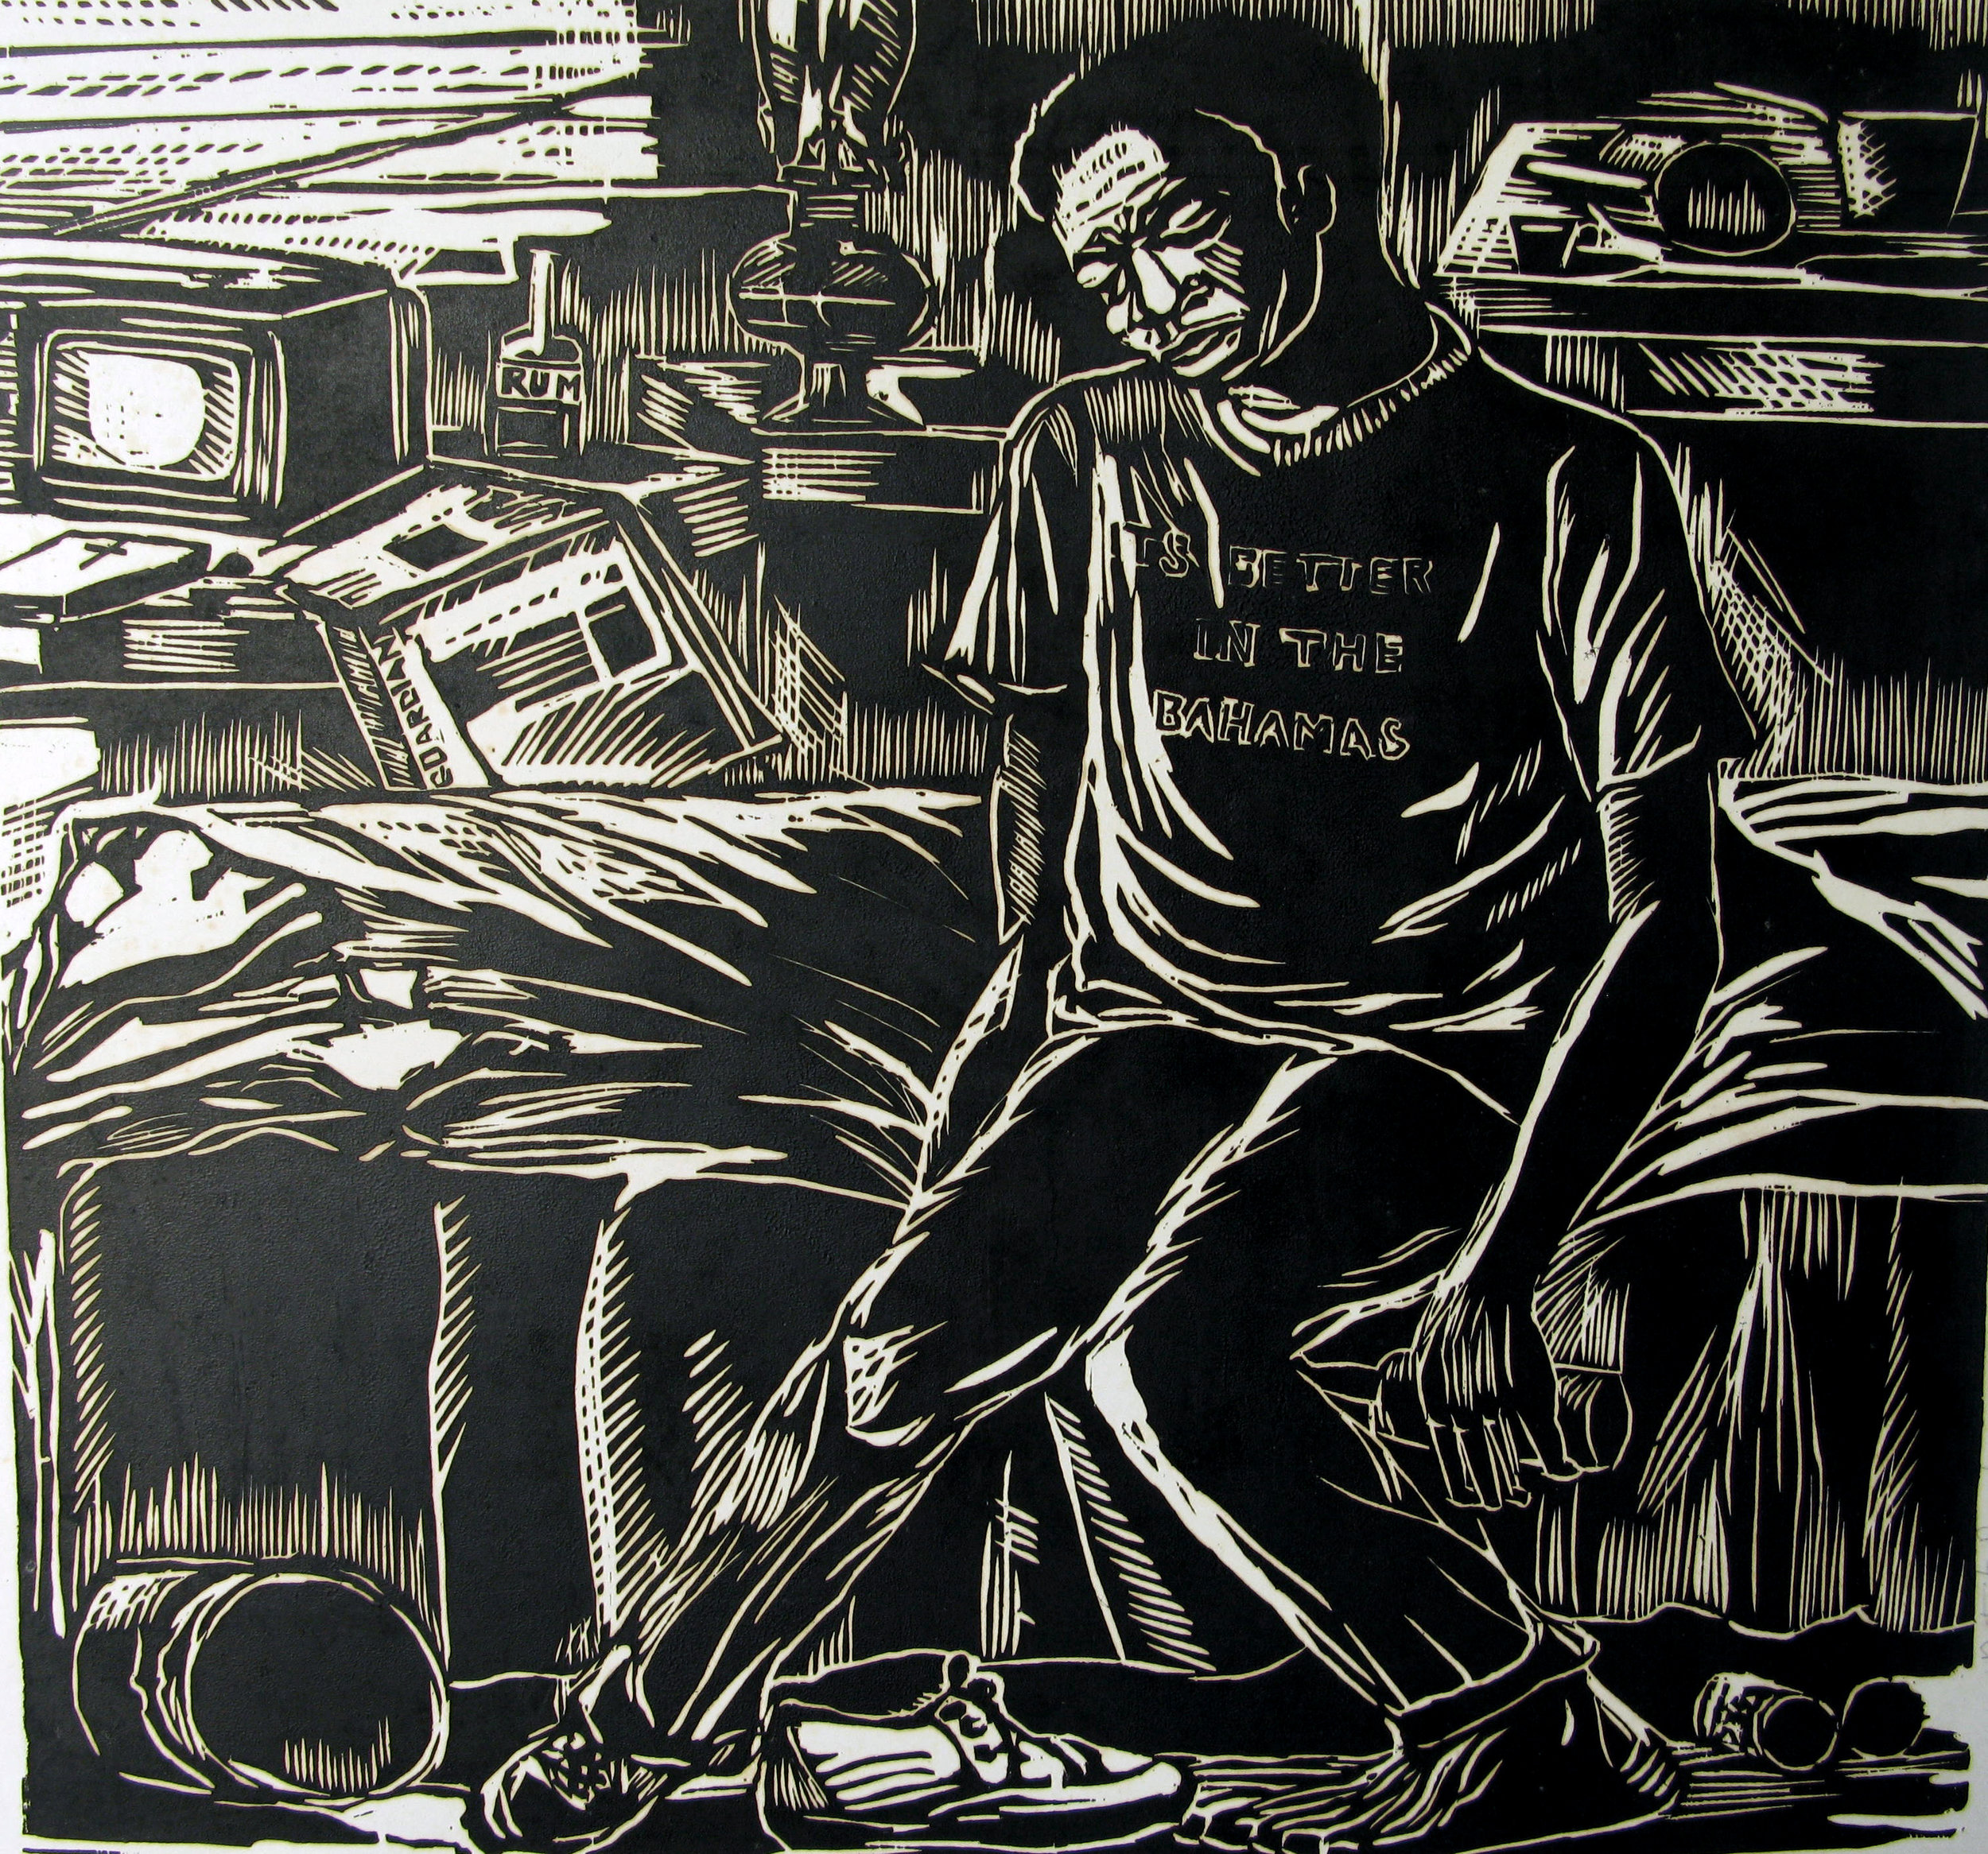 """Max Taylor. Down and Out (Its better in The Bahamas). 1982. Woodcut. 20.5"""" by 22.5"""""""